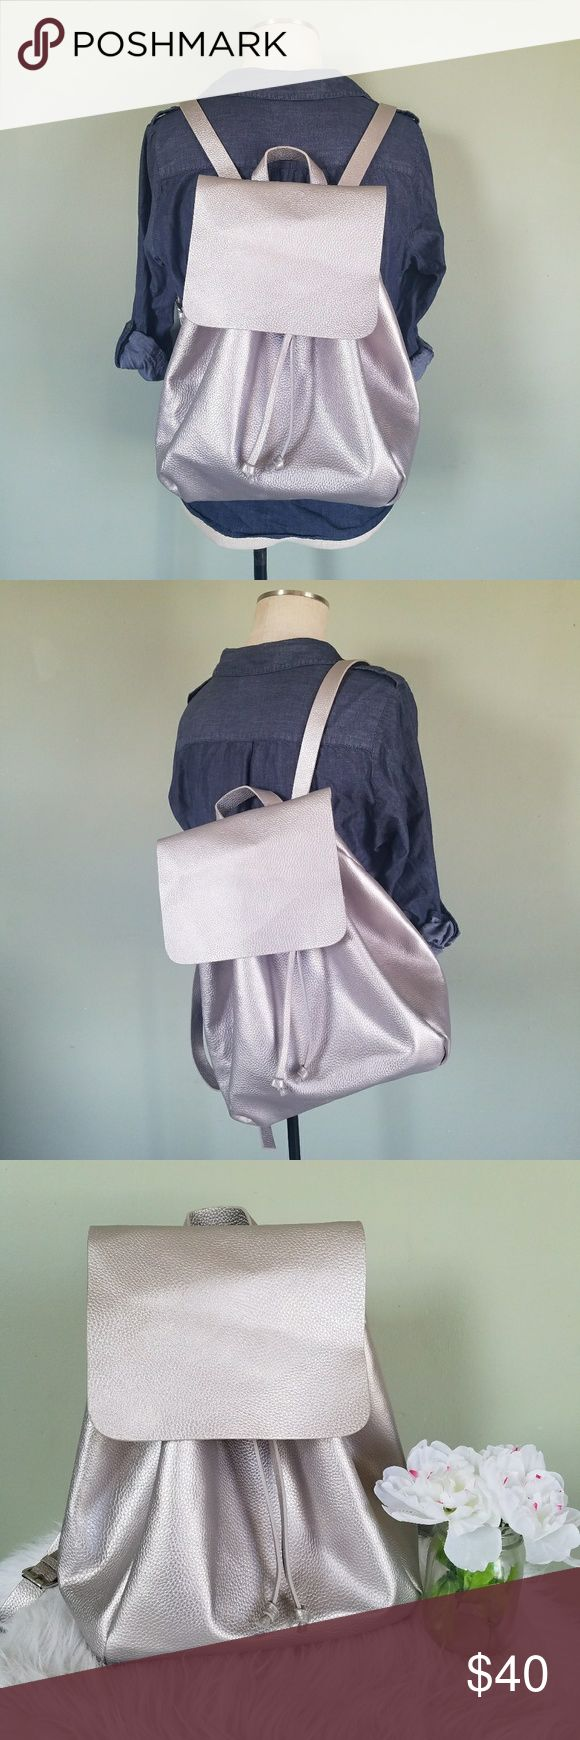 "Zara TRF Silver Backpack Zara Trafaluc. Foldover Flap Backpack Color: Silver. Drawstring closure. Foldover flap top. Adjustable straps. Large size. 16"" x 12"" x 8"" Great condition. Inside has some staining but has been cleaned. Zara Bags Backpacks"